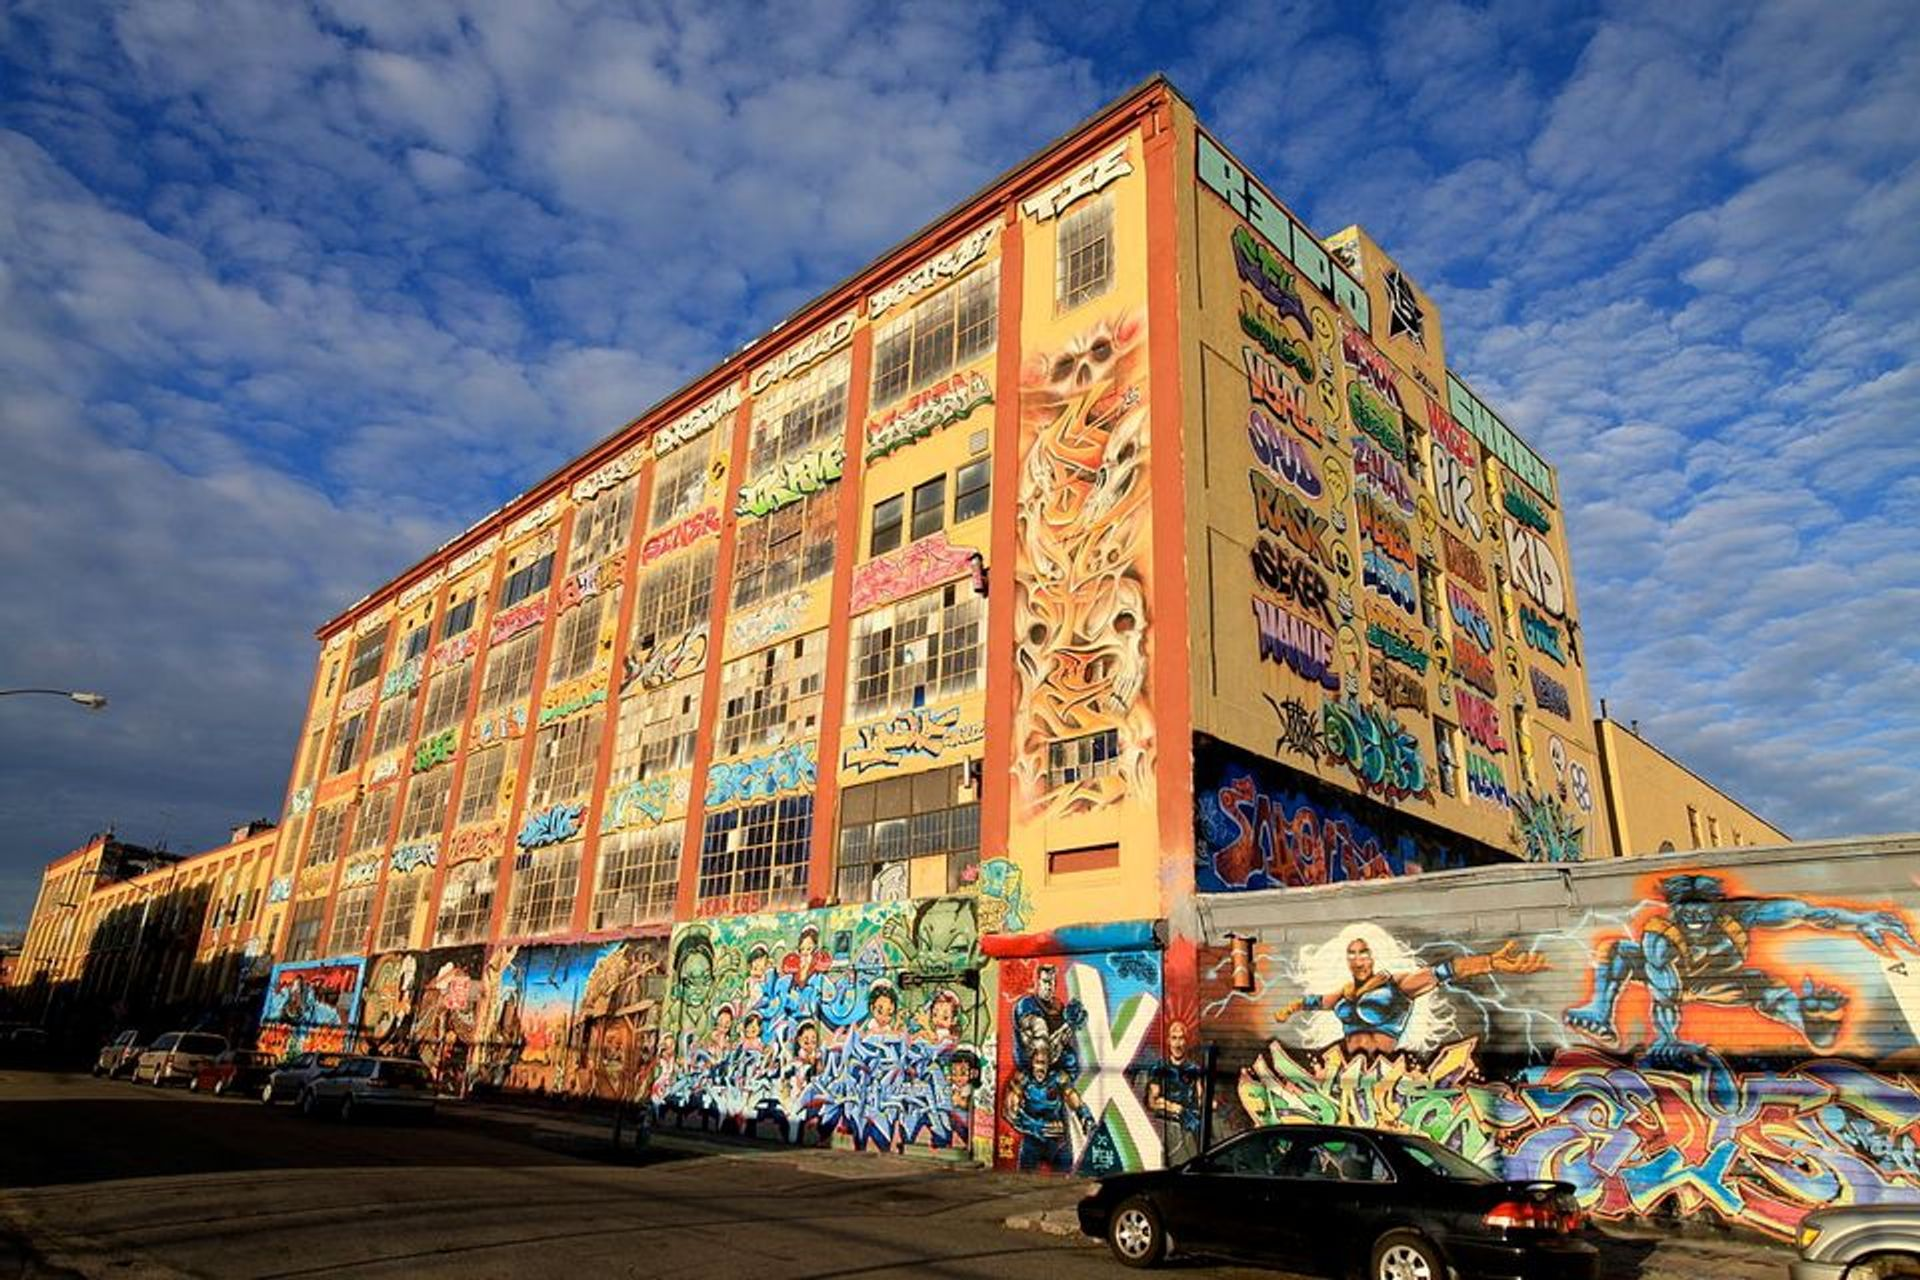 Street art on the 5Pointz complex in Long Island City, Queens that was later whitewashed by a developer